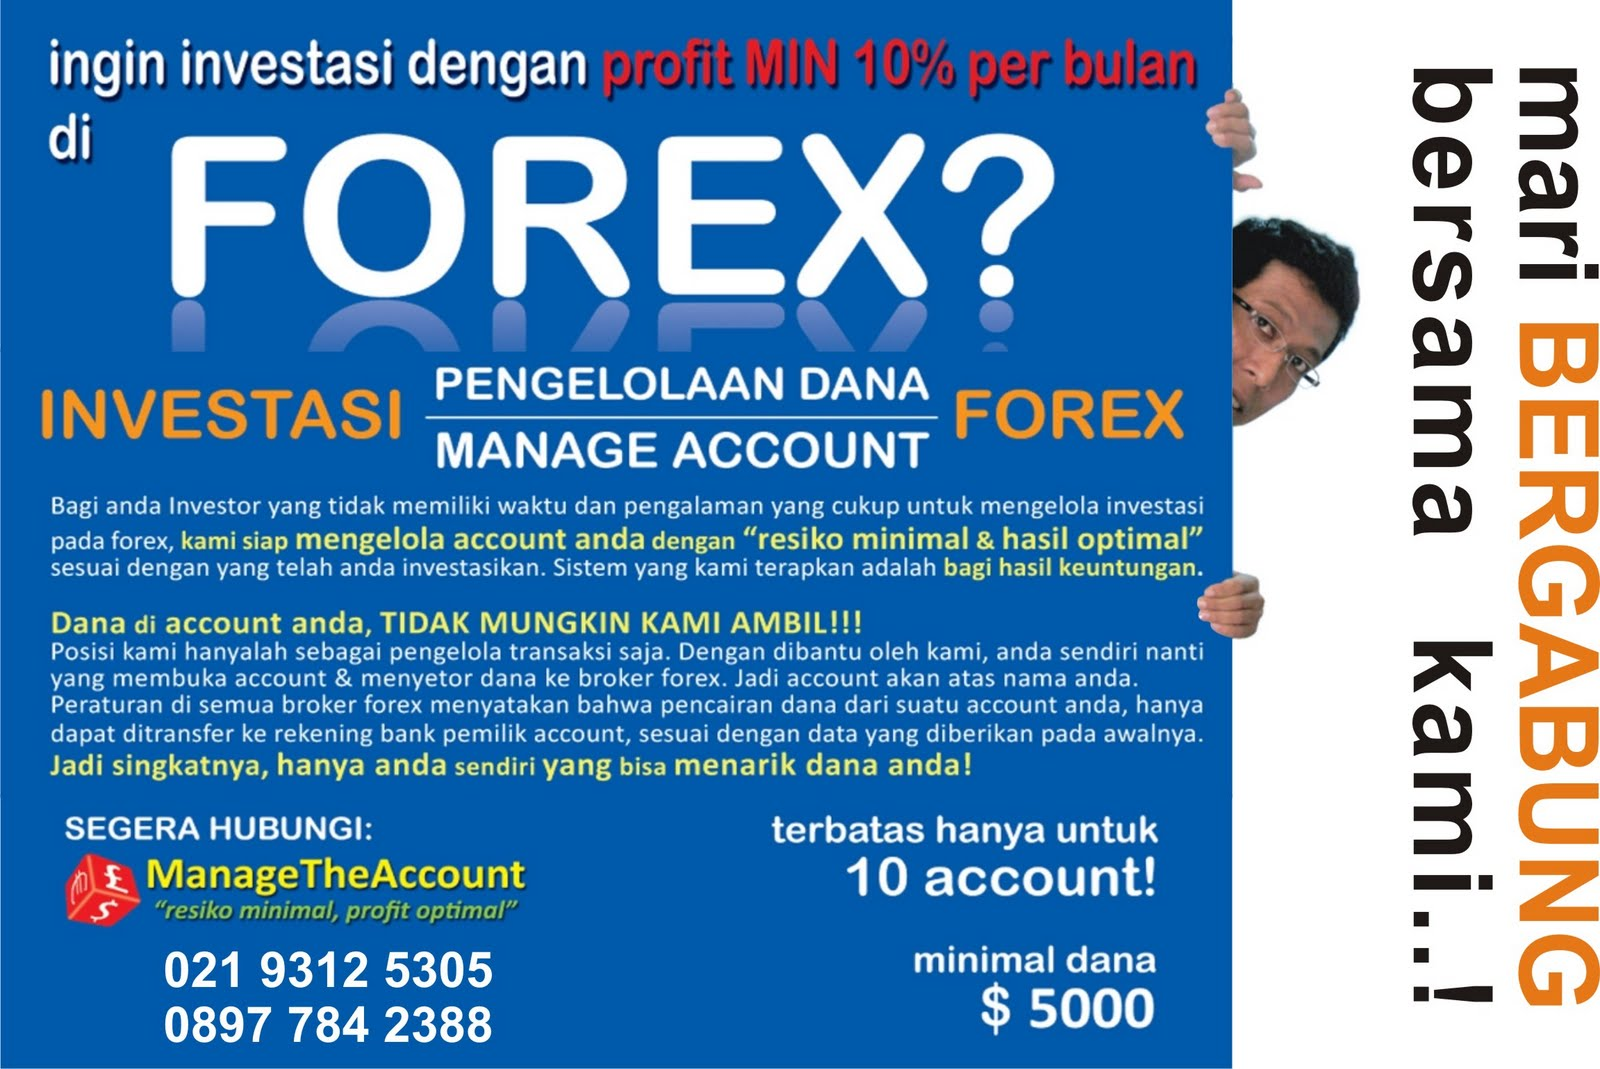 Live chat with forex trader